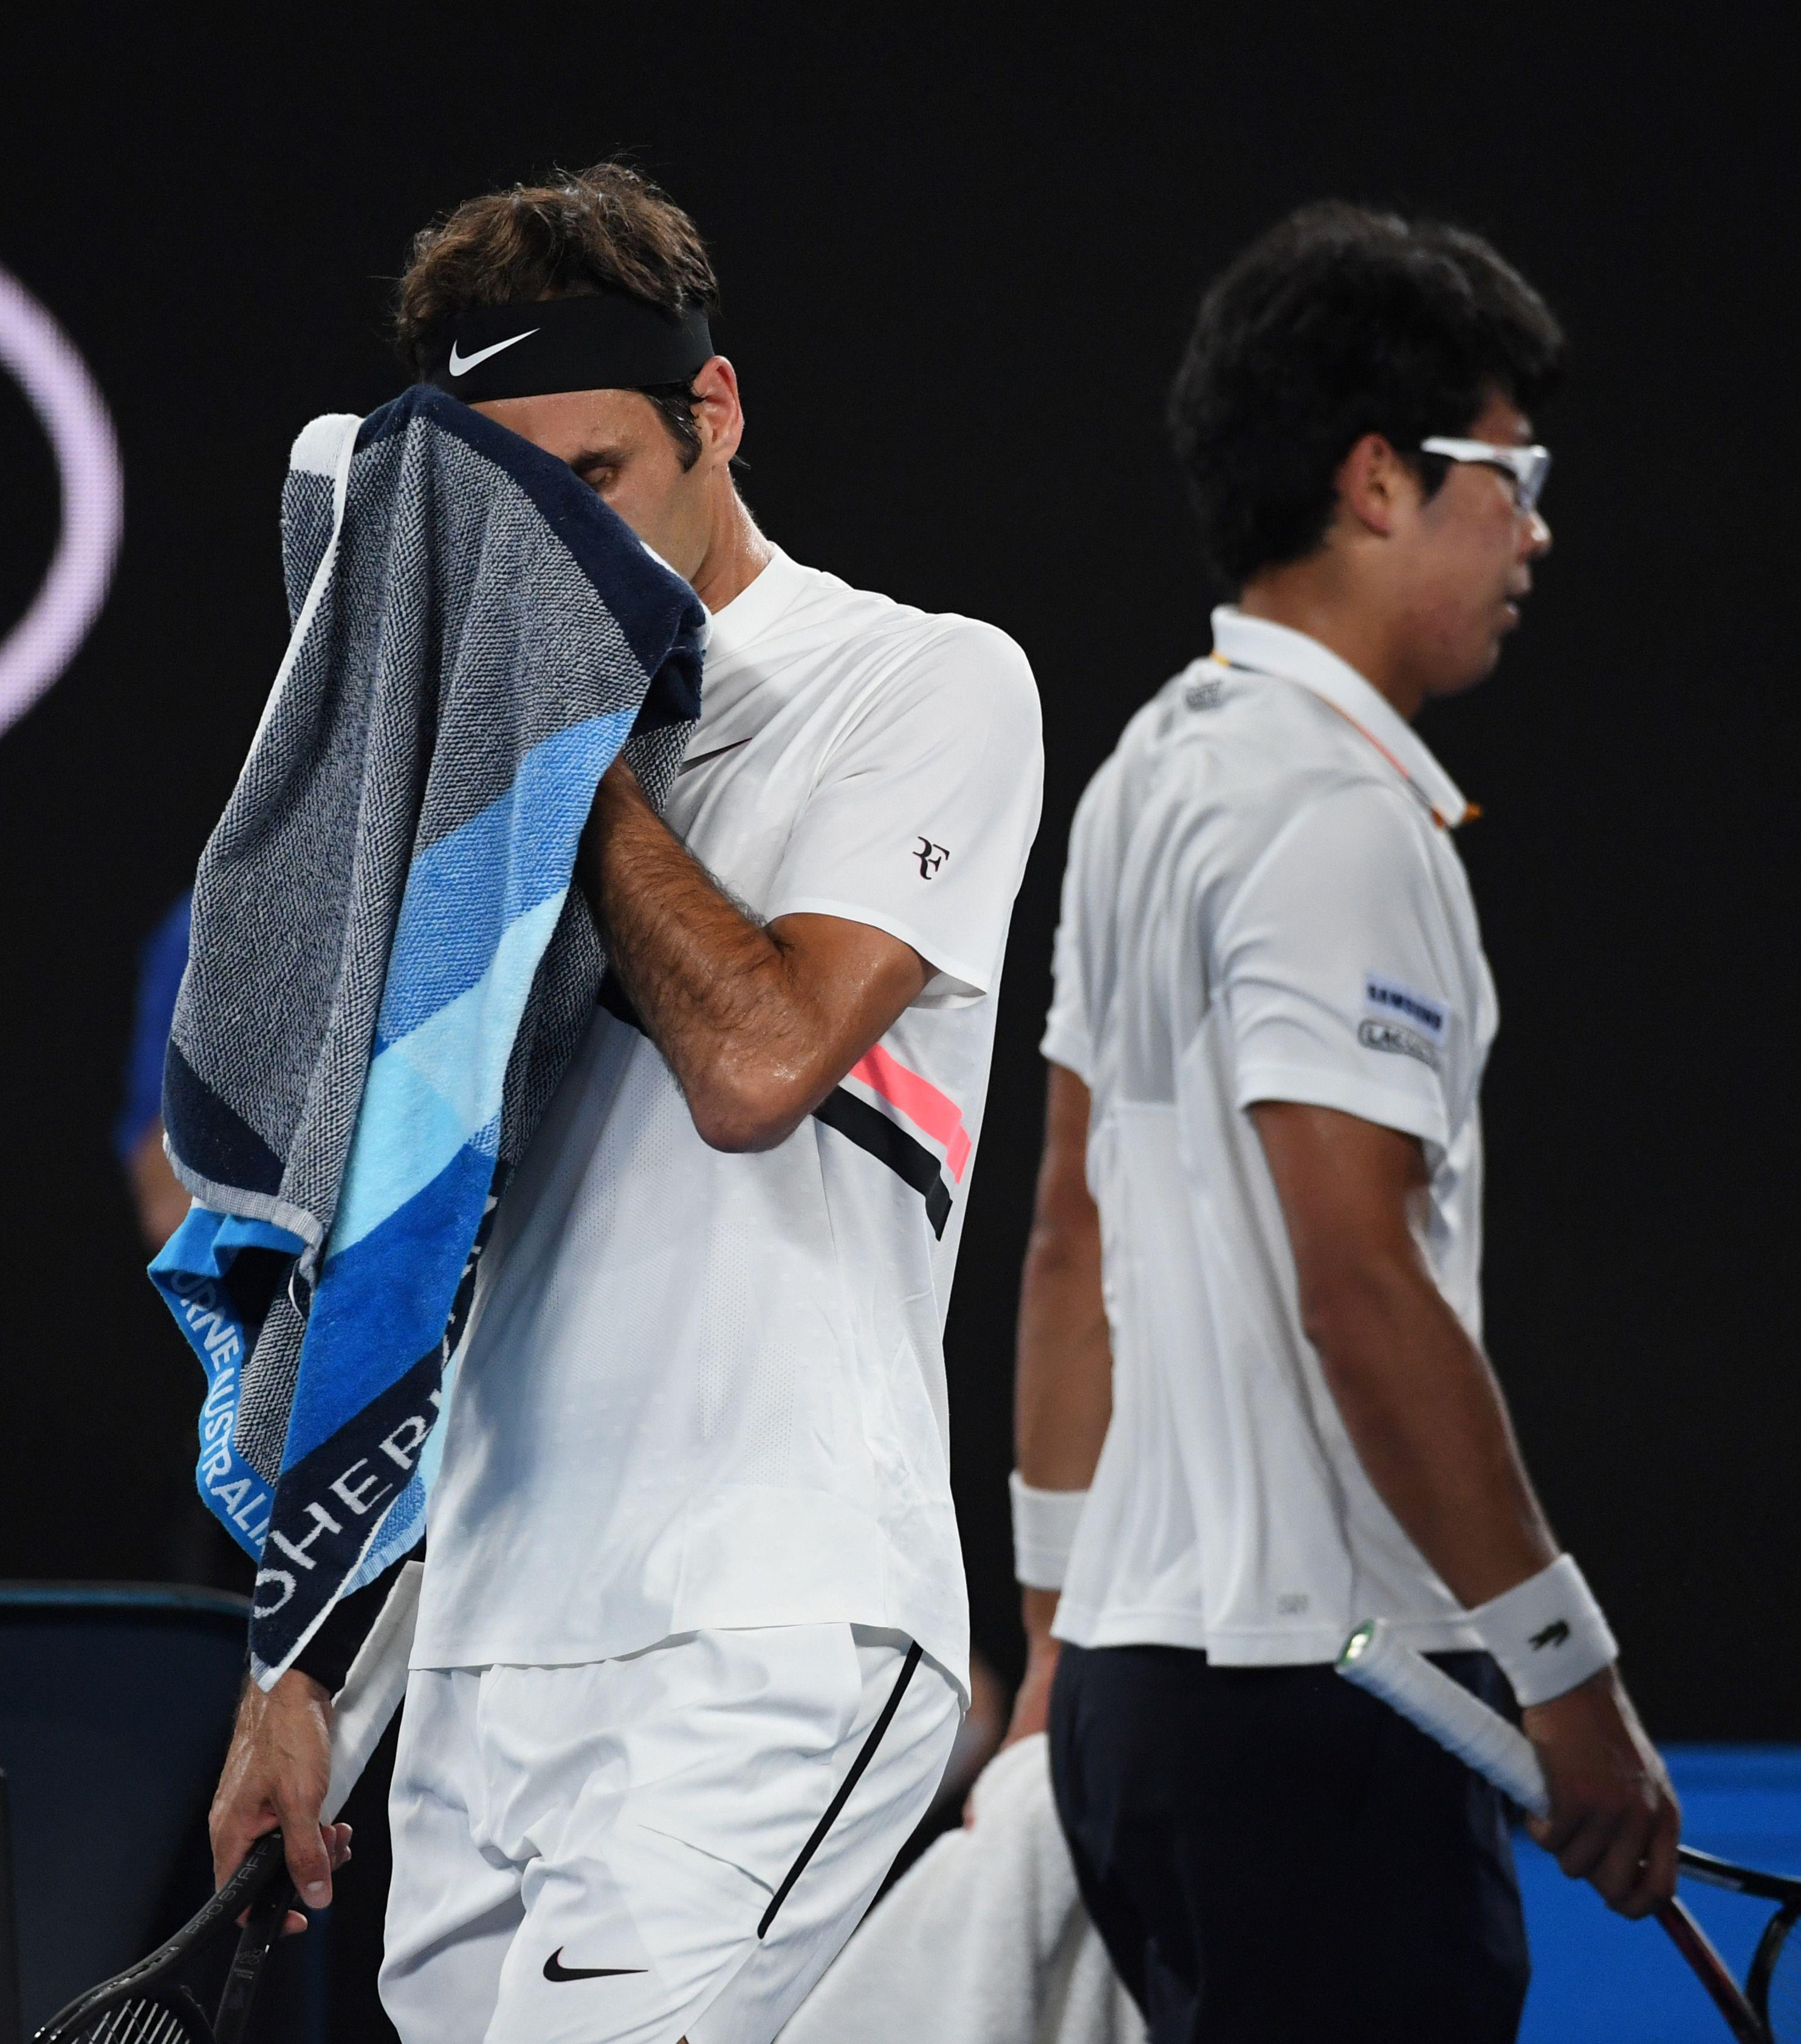 Roger Federer and Chung Hyeon during their semi-final clash in Australia